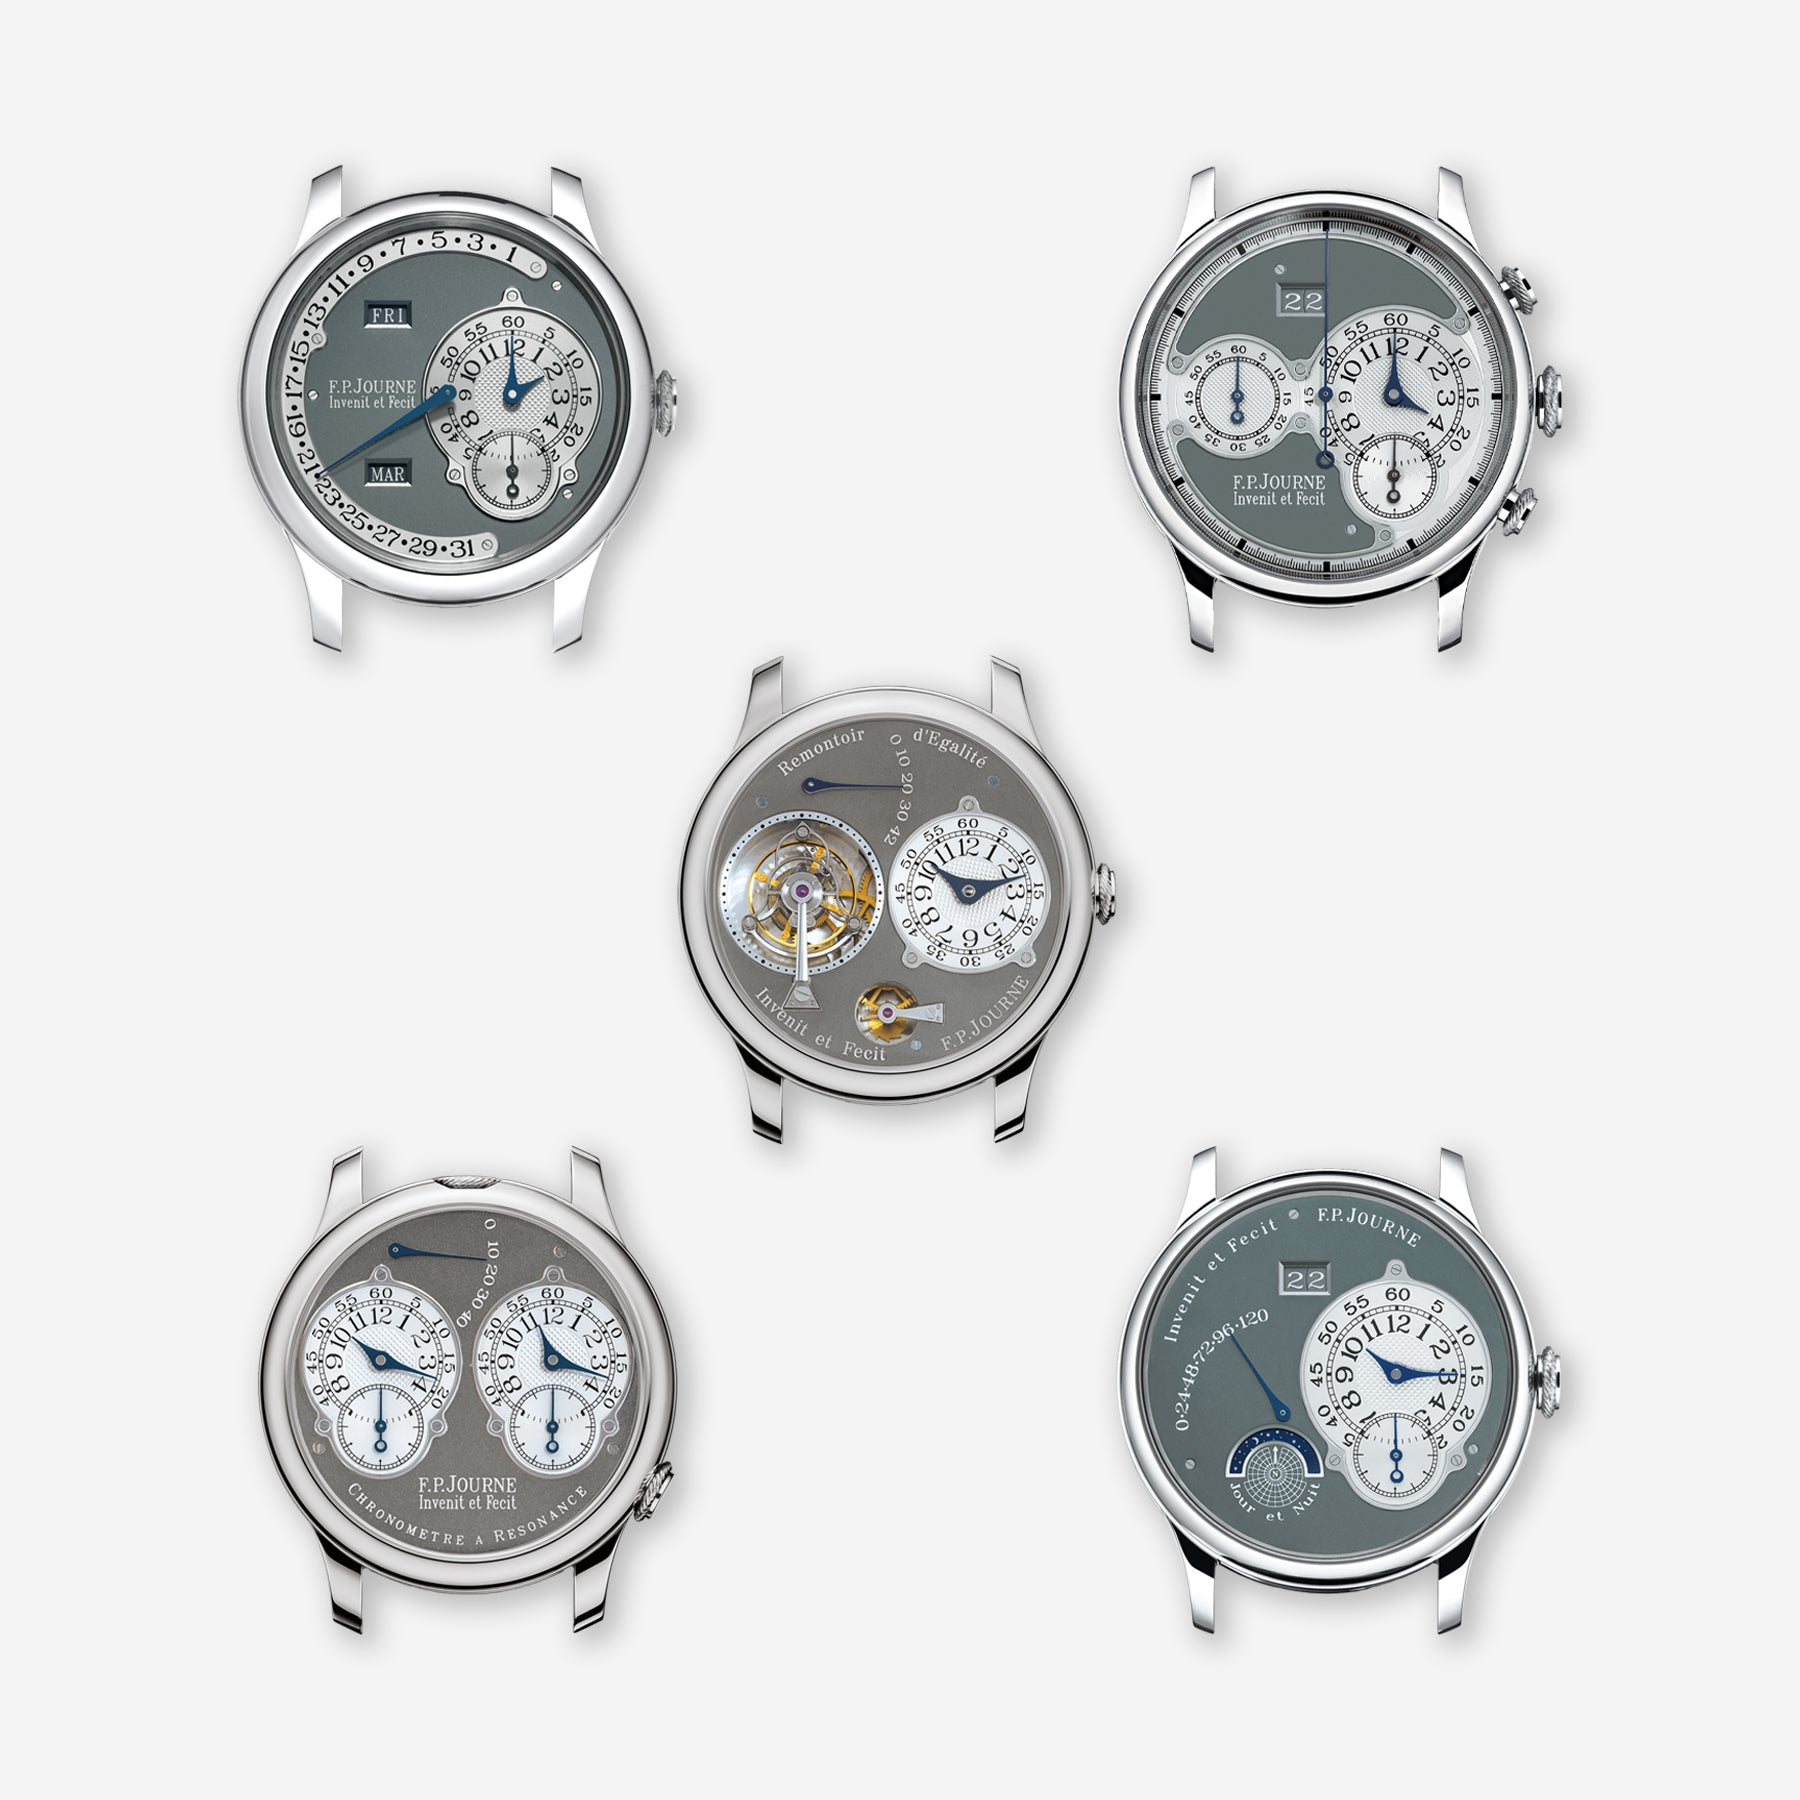 The entire Ruthenium collection that F.P. Journe produced